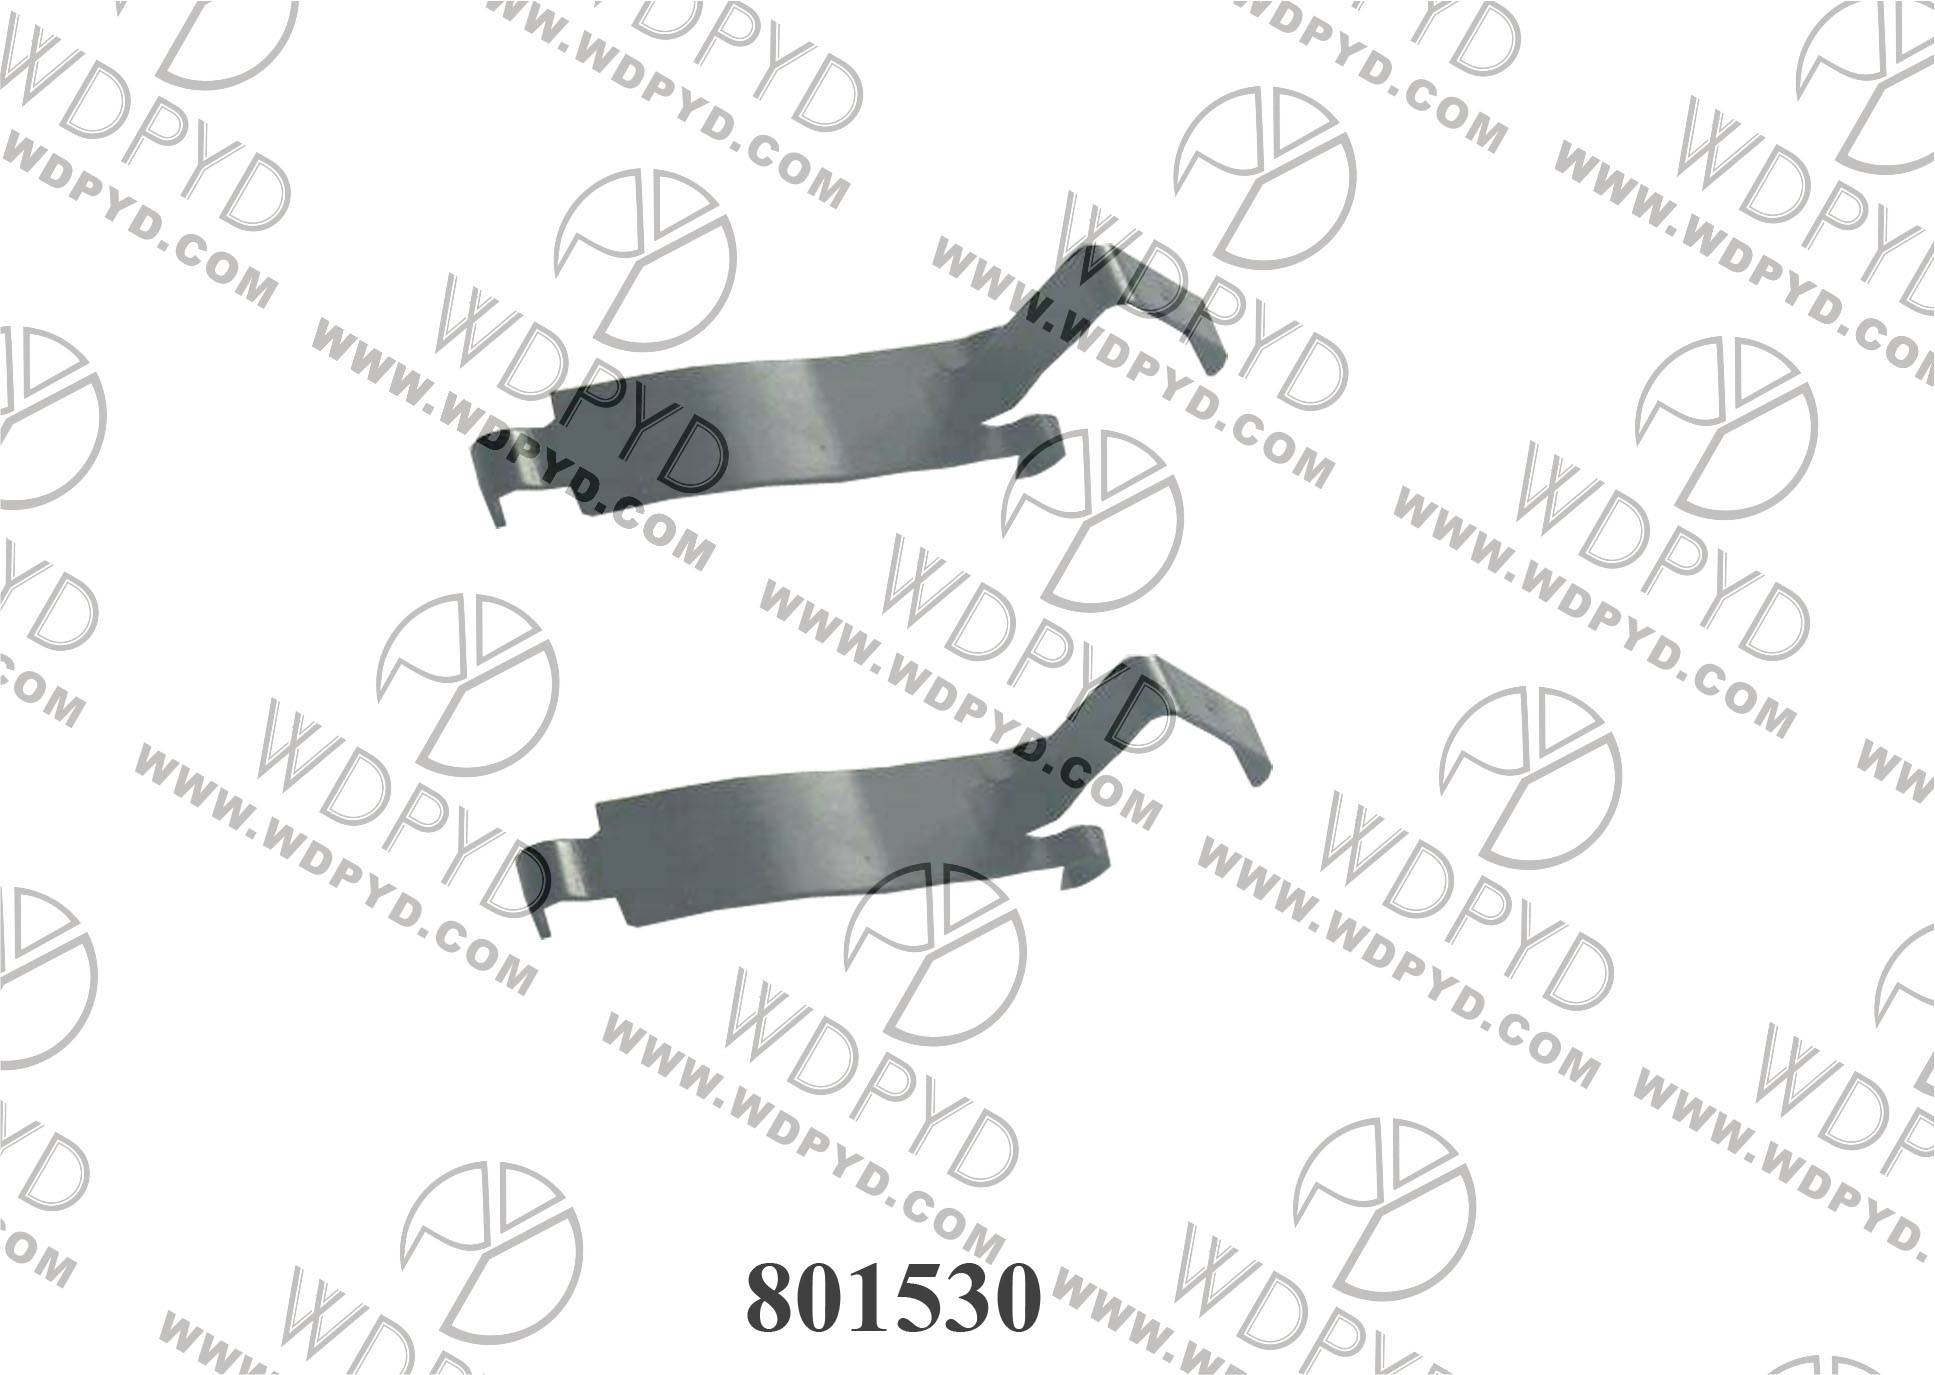 Wellde Disc Brake Pad Clip 801530